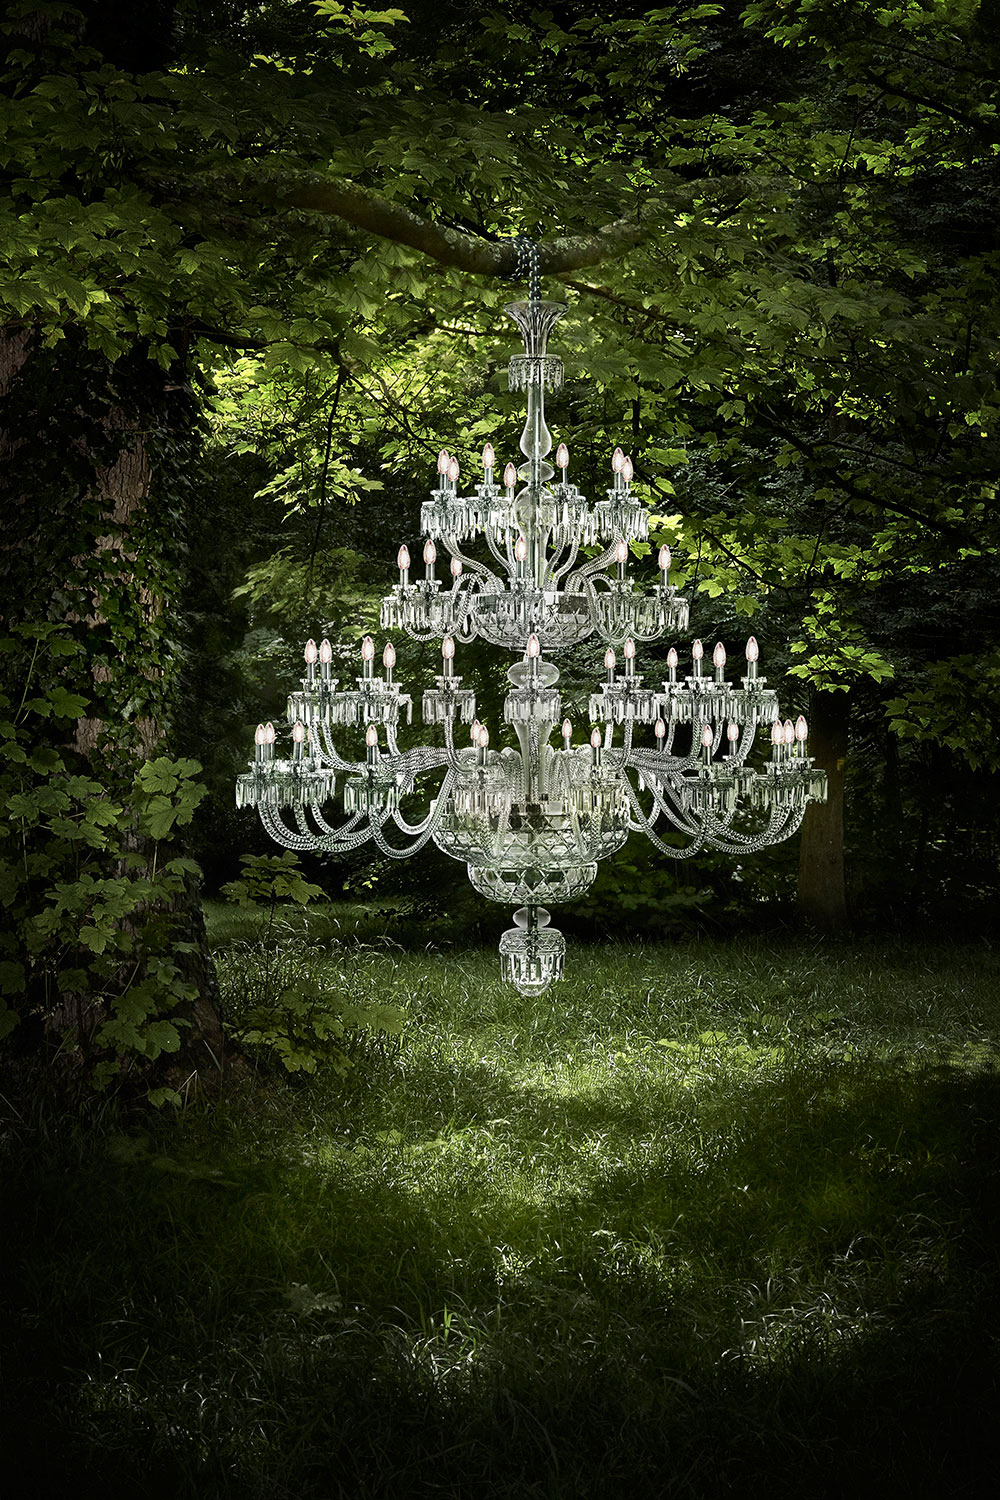 Saint-louis-cristal-chandelier-royal-toomanypictures